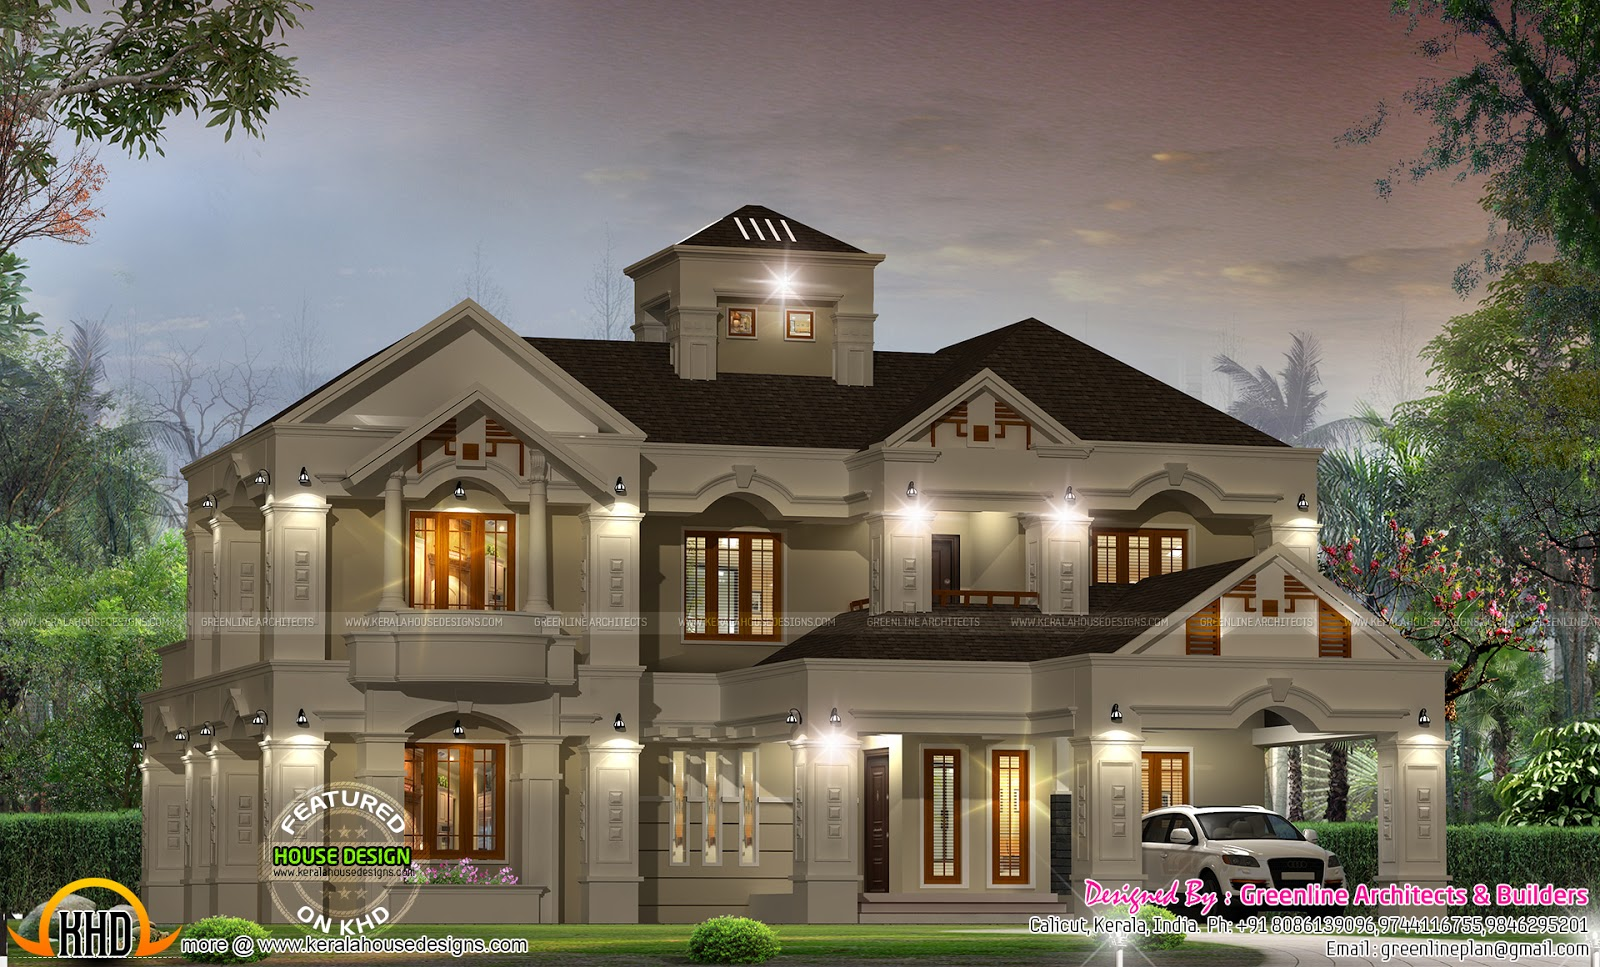 Luxury villa design in kerala kerala home design and for Kerala style villa plans